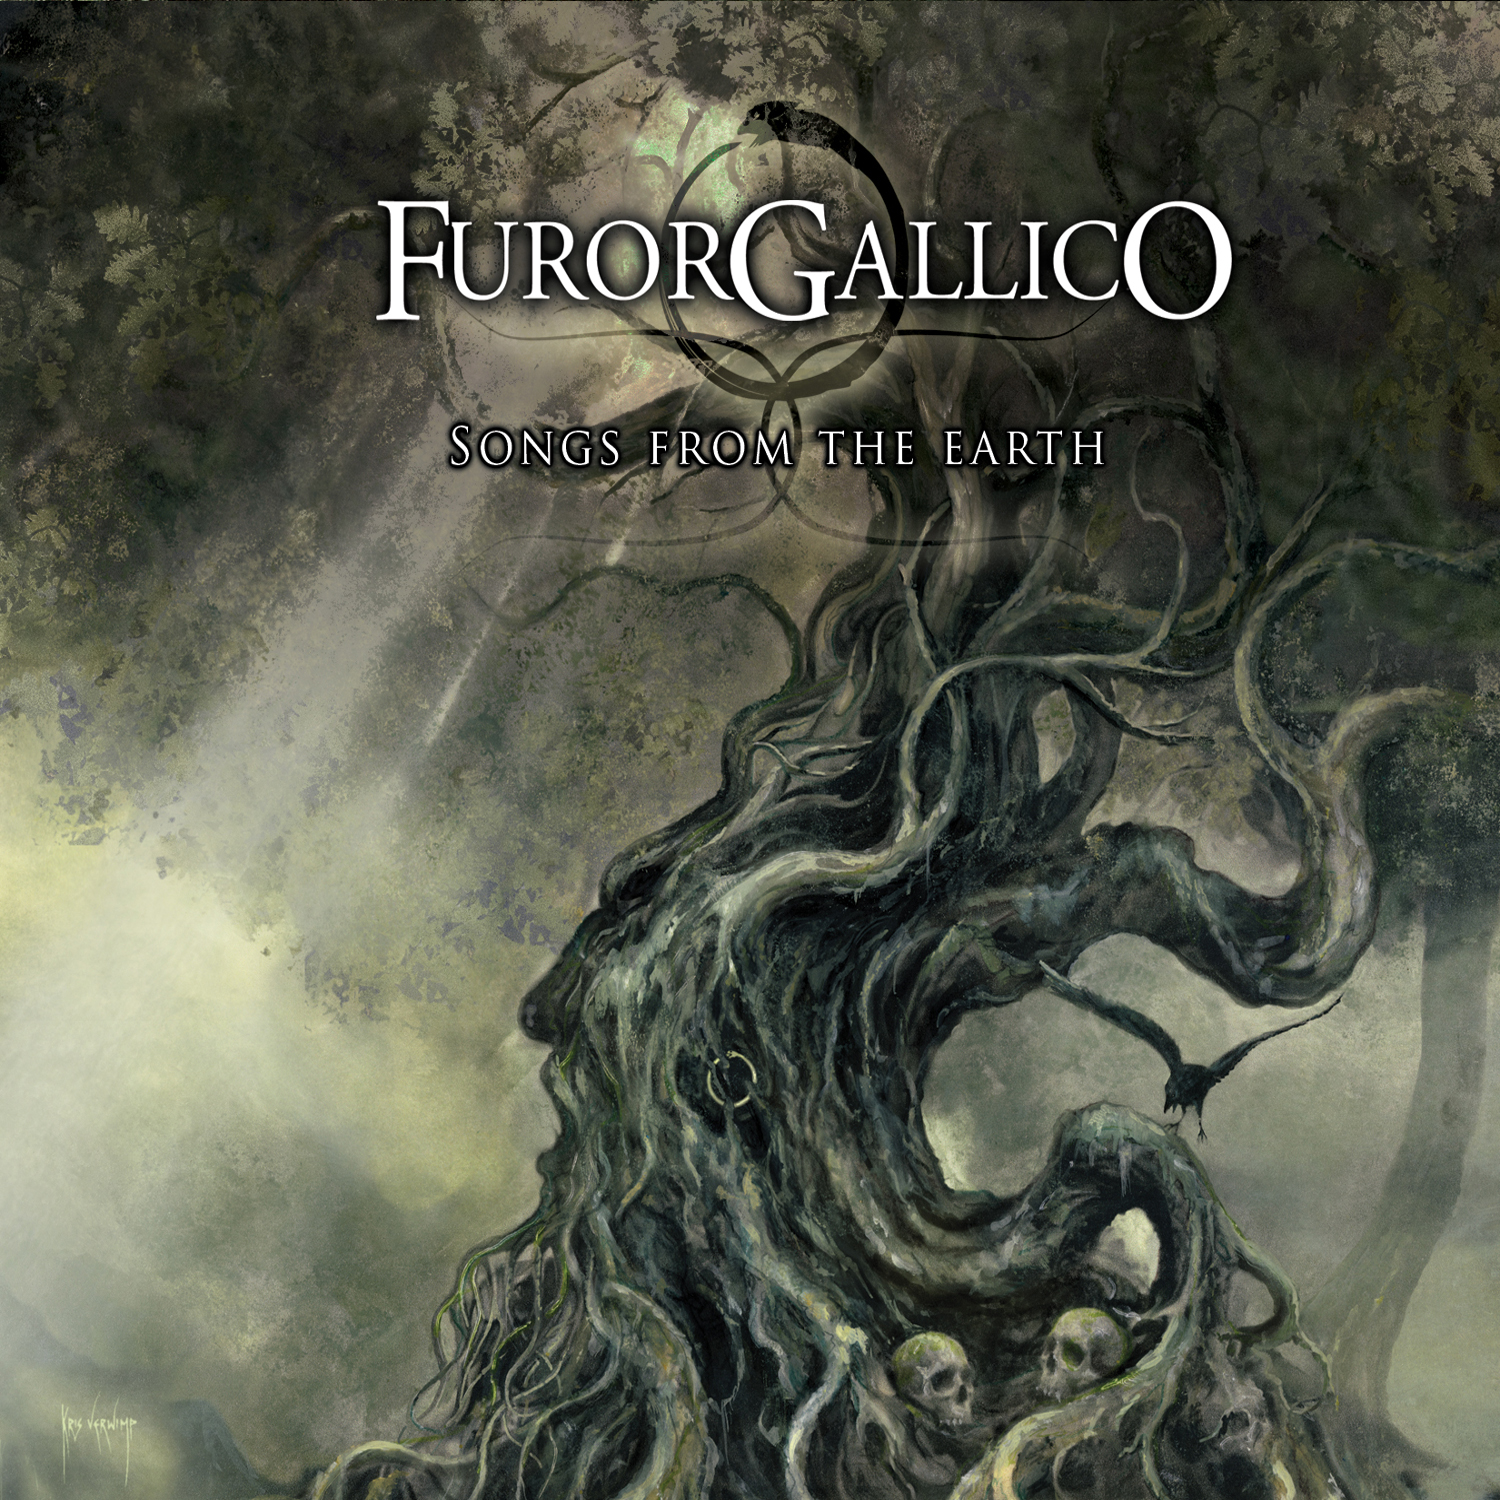 Furor Gallico – Songs from the Earth Review